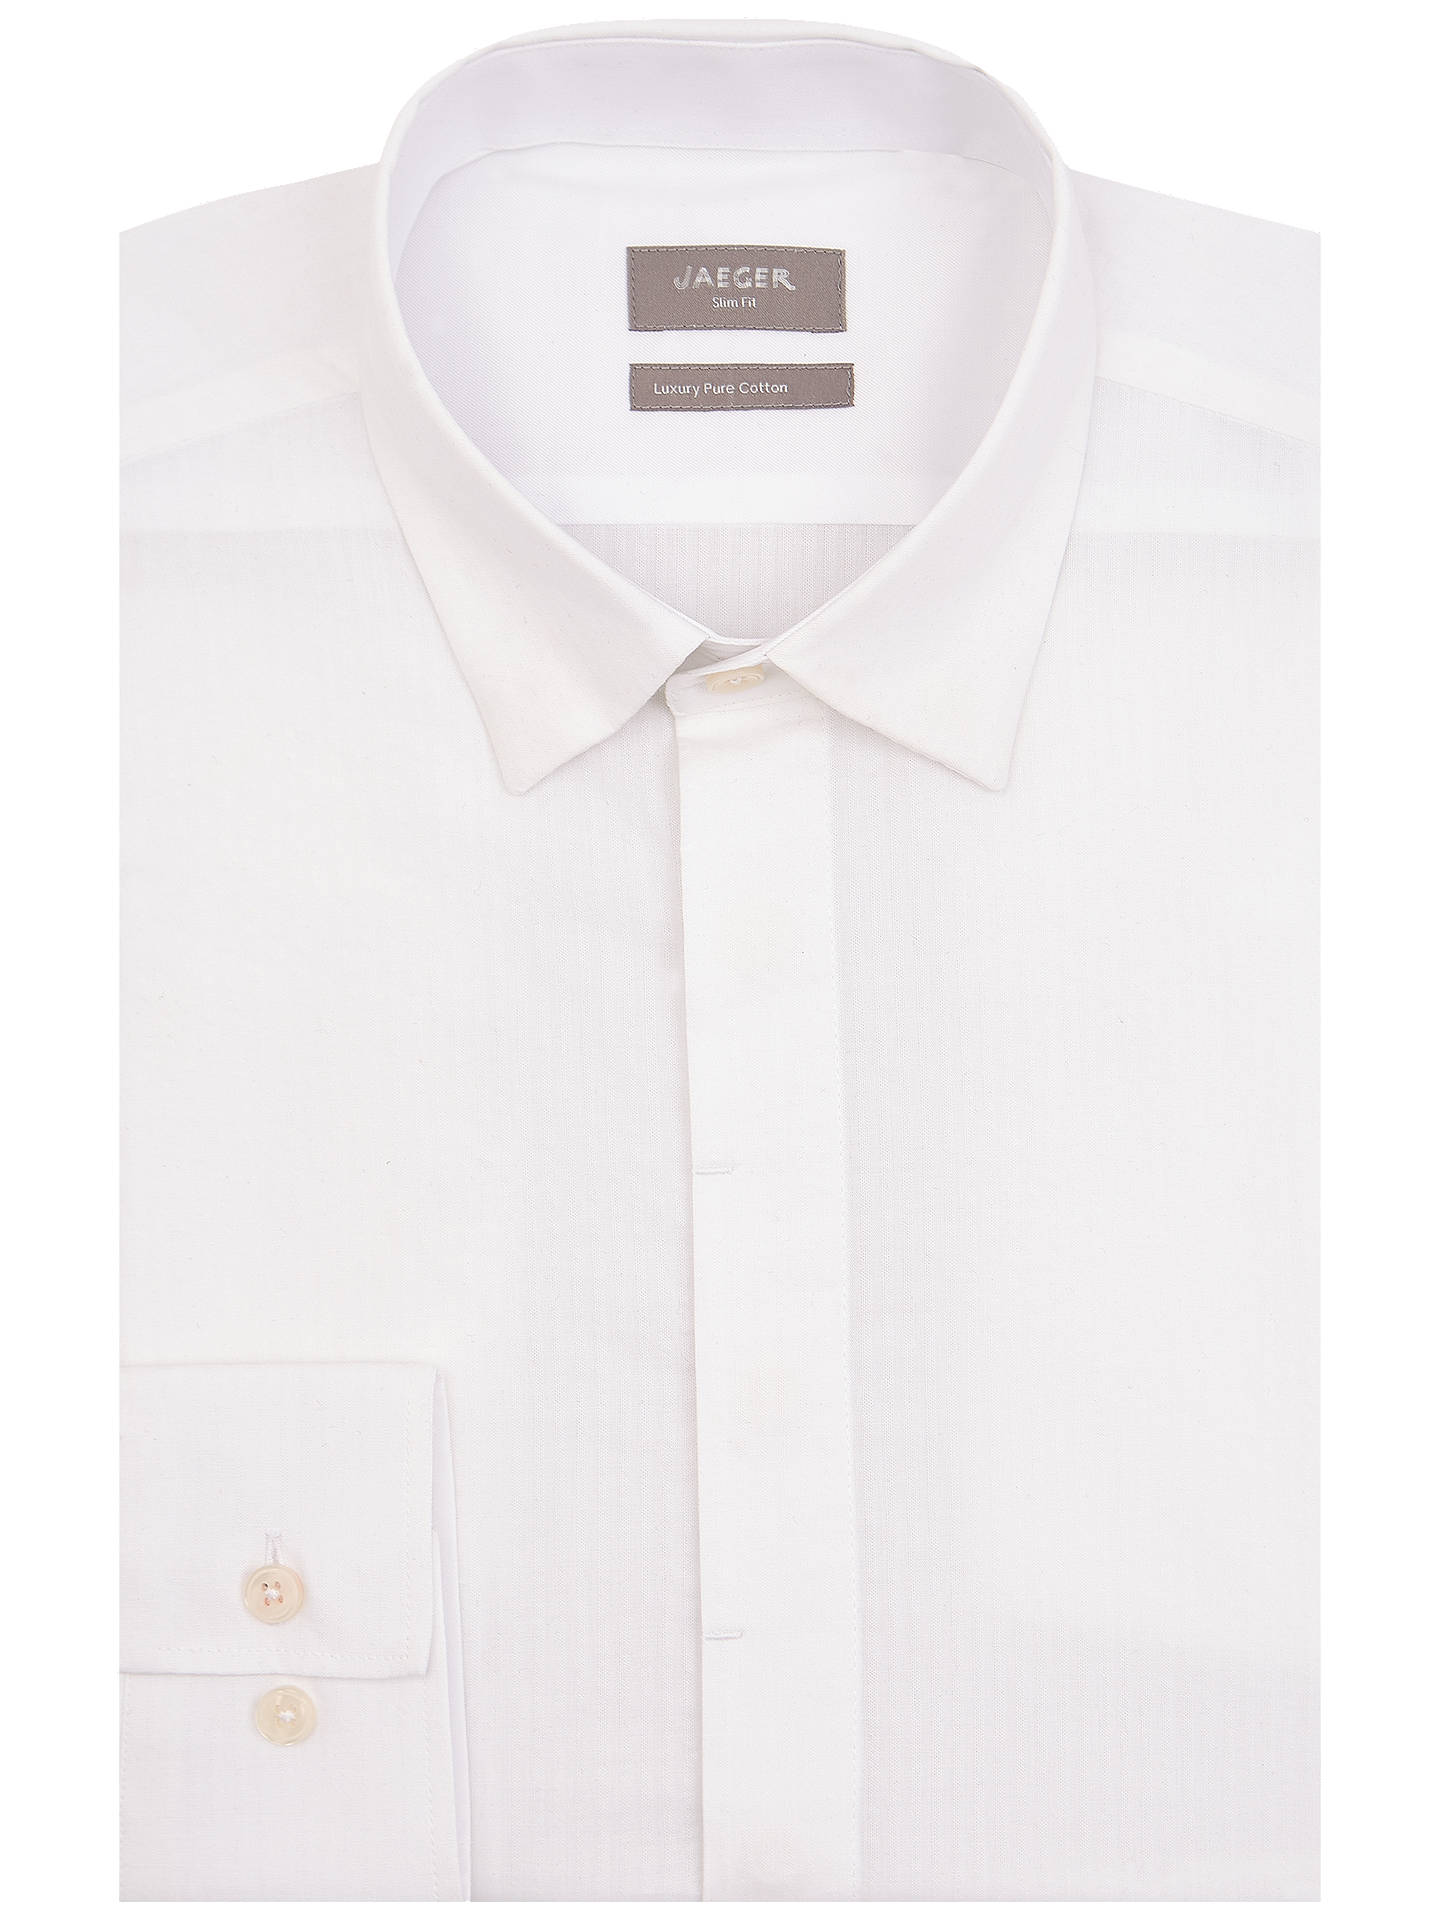 BuyJaeger Seersucker Cotton Slim Fit Shirt, White, 17.5 Online at johnlewis.com